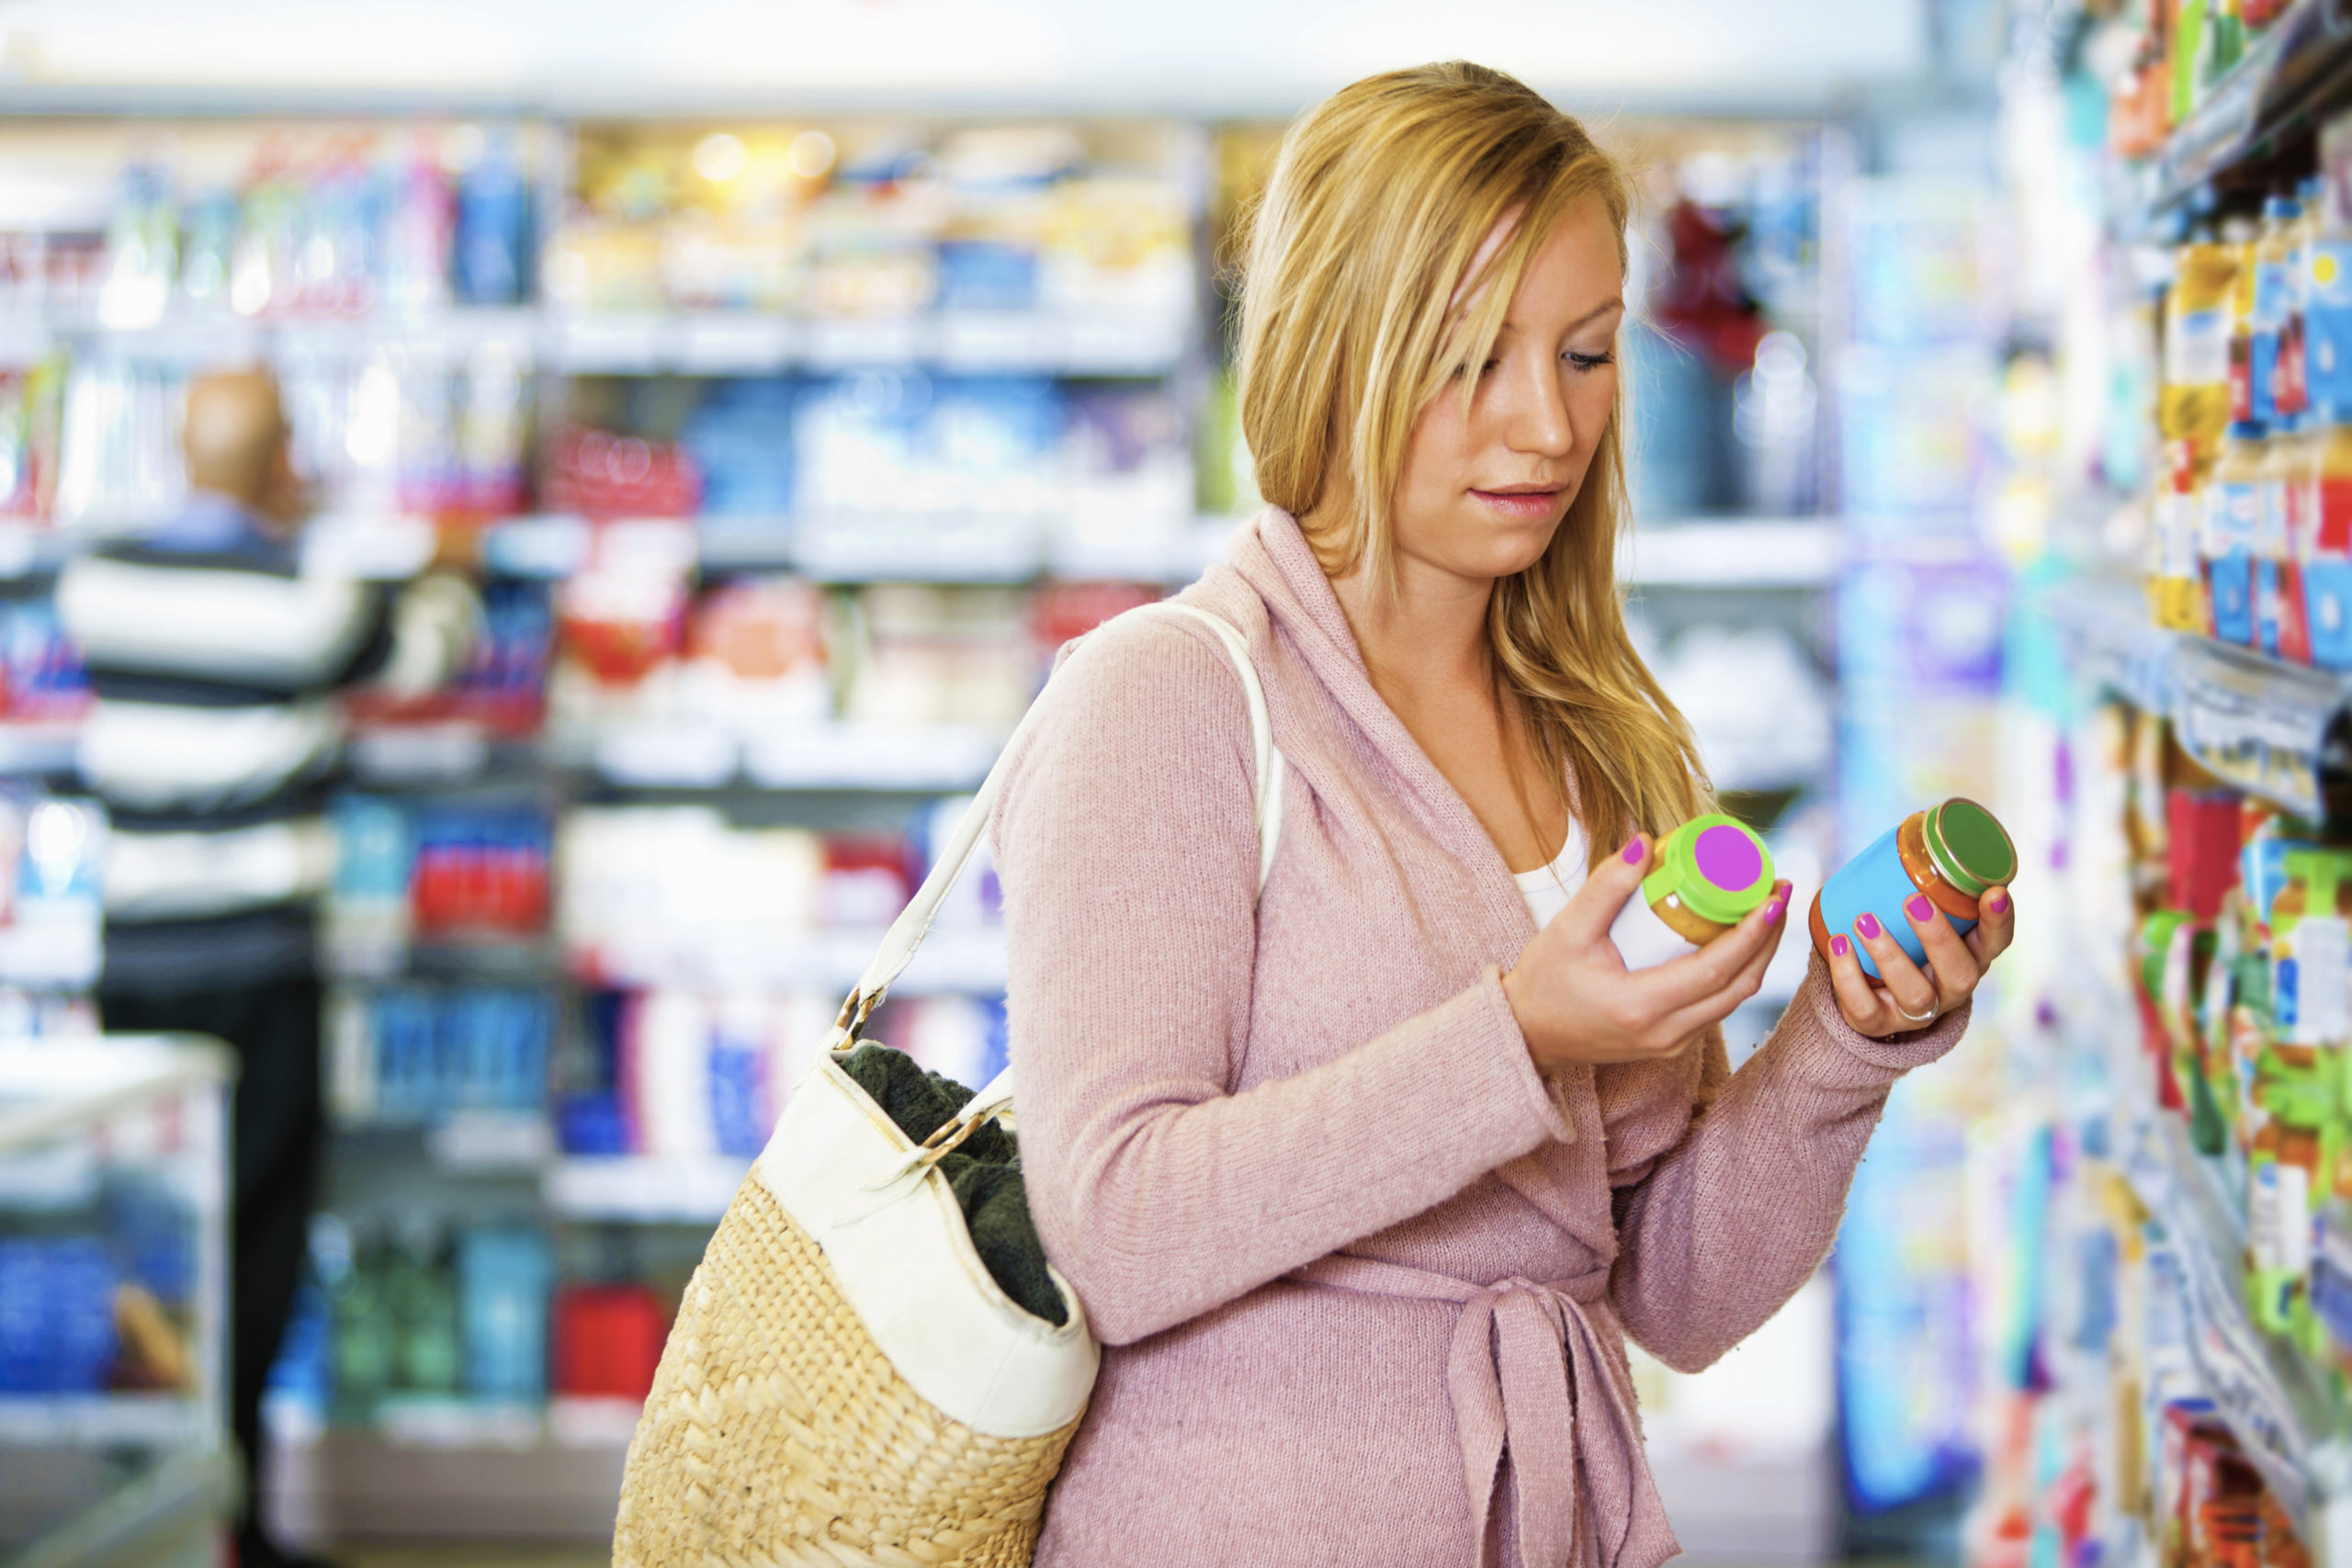 Young woman holding jar in the supermarket